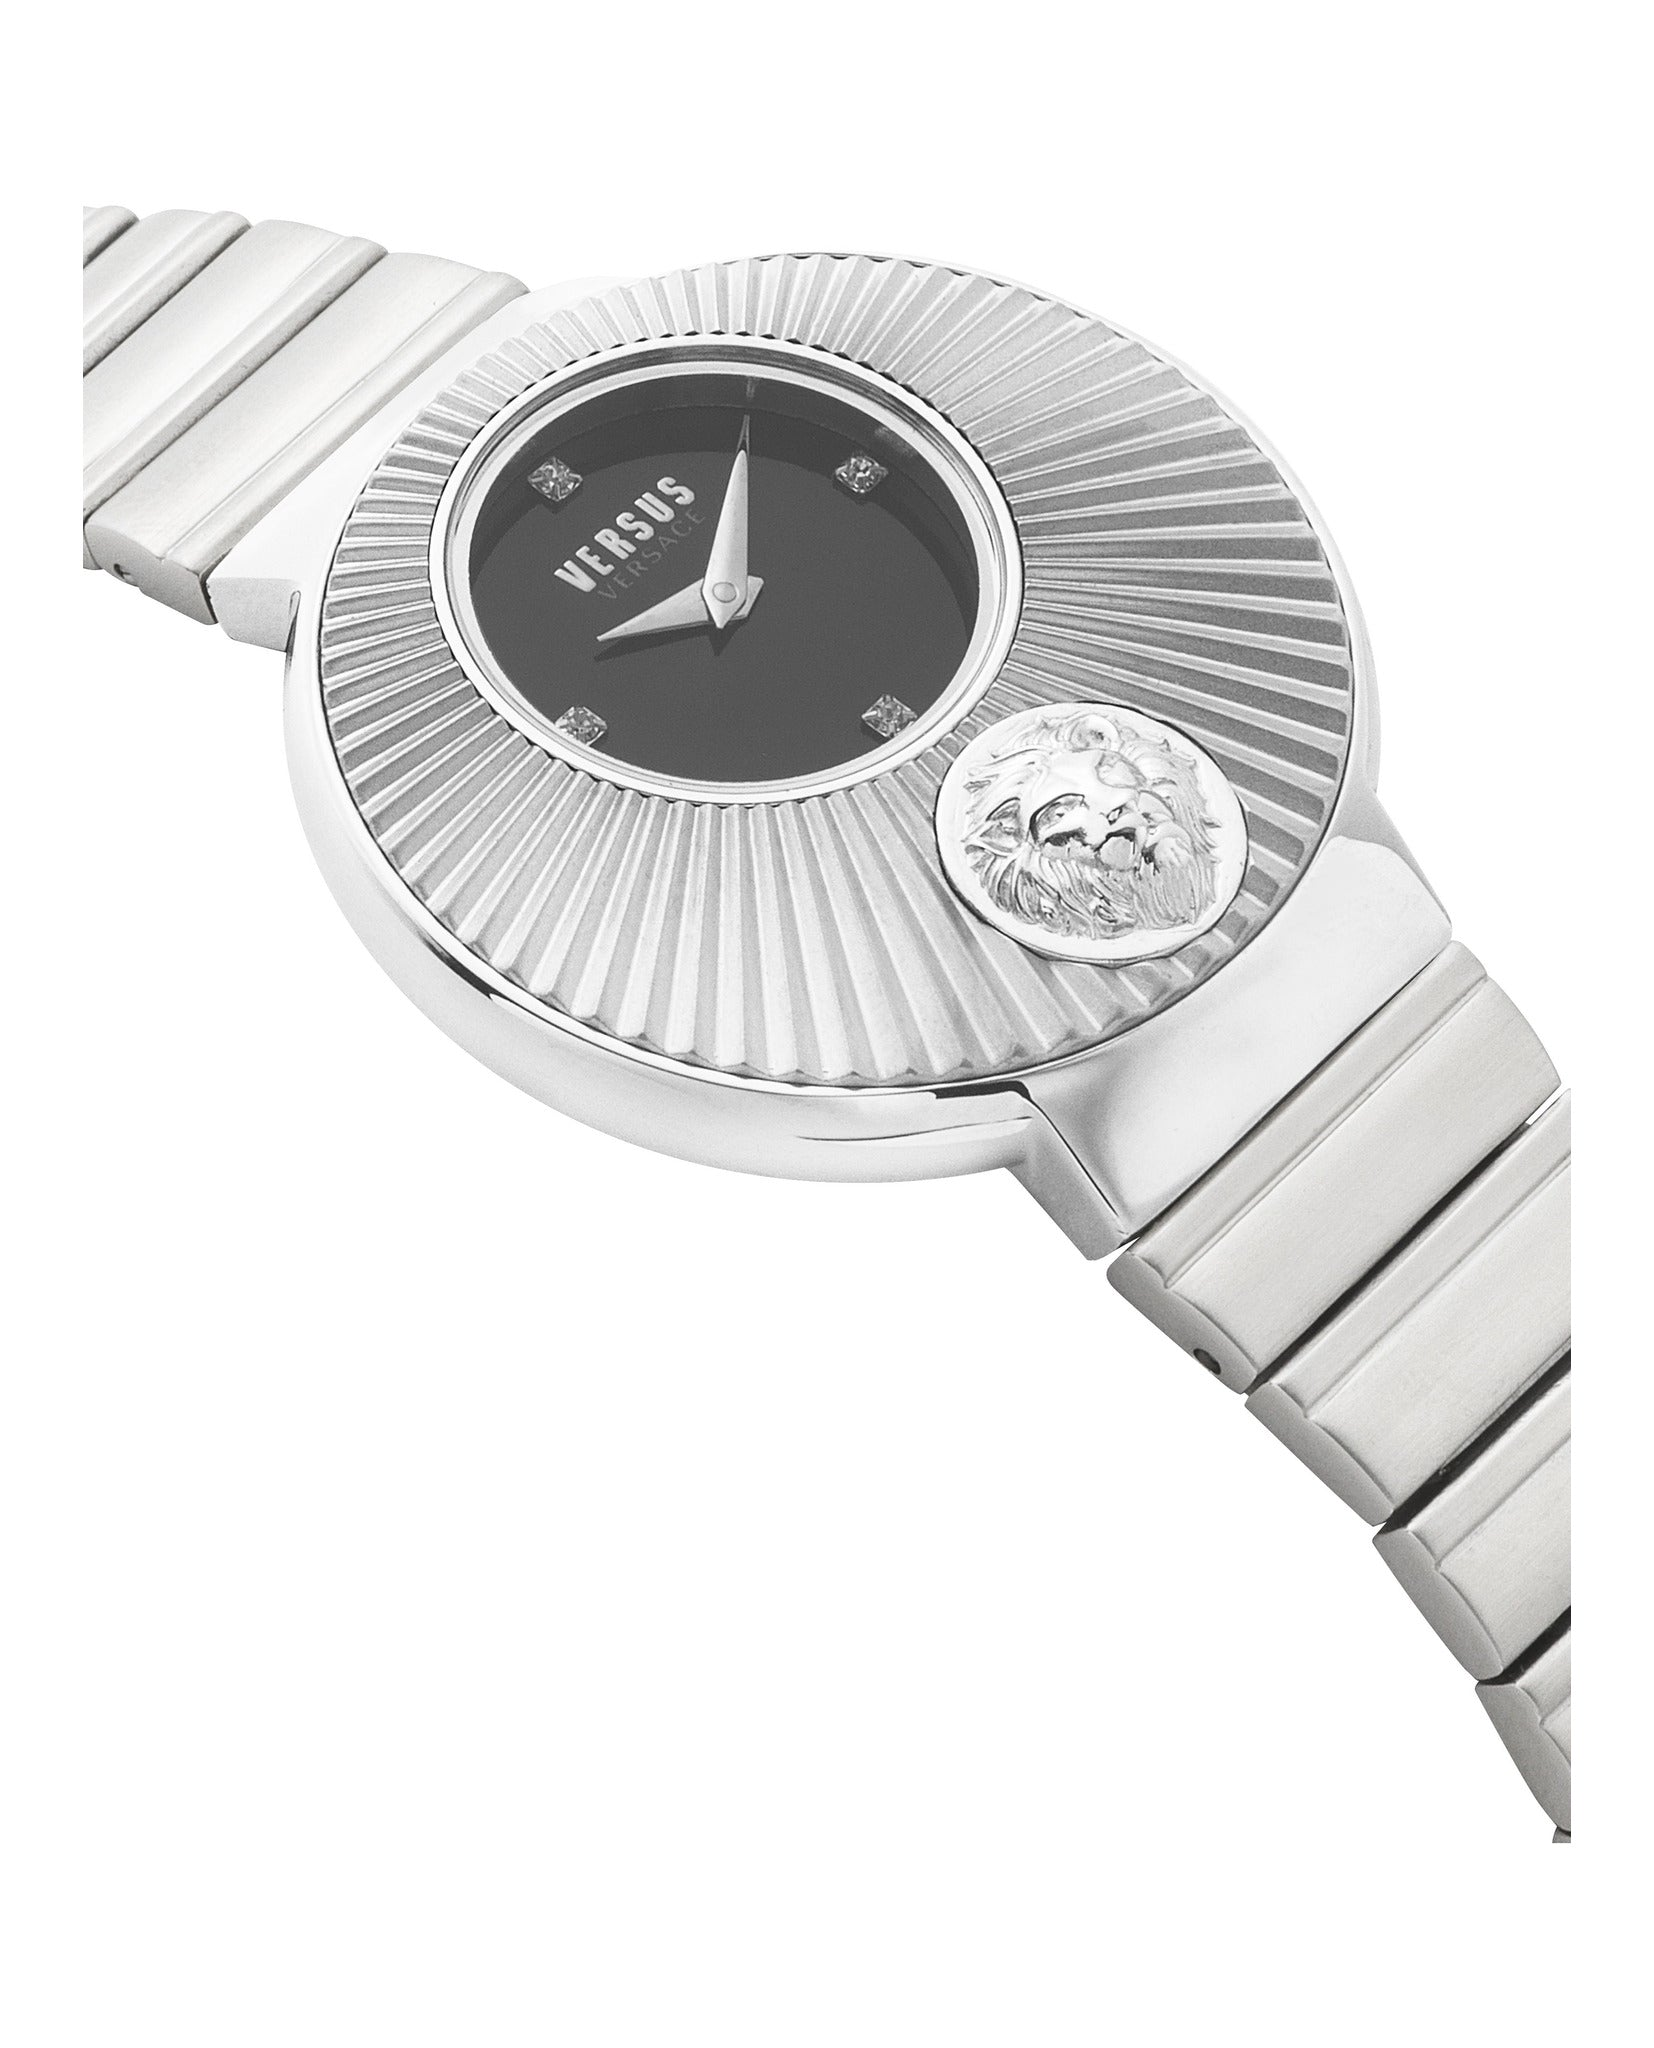 Sempione Bracelet watch